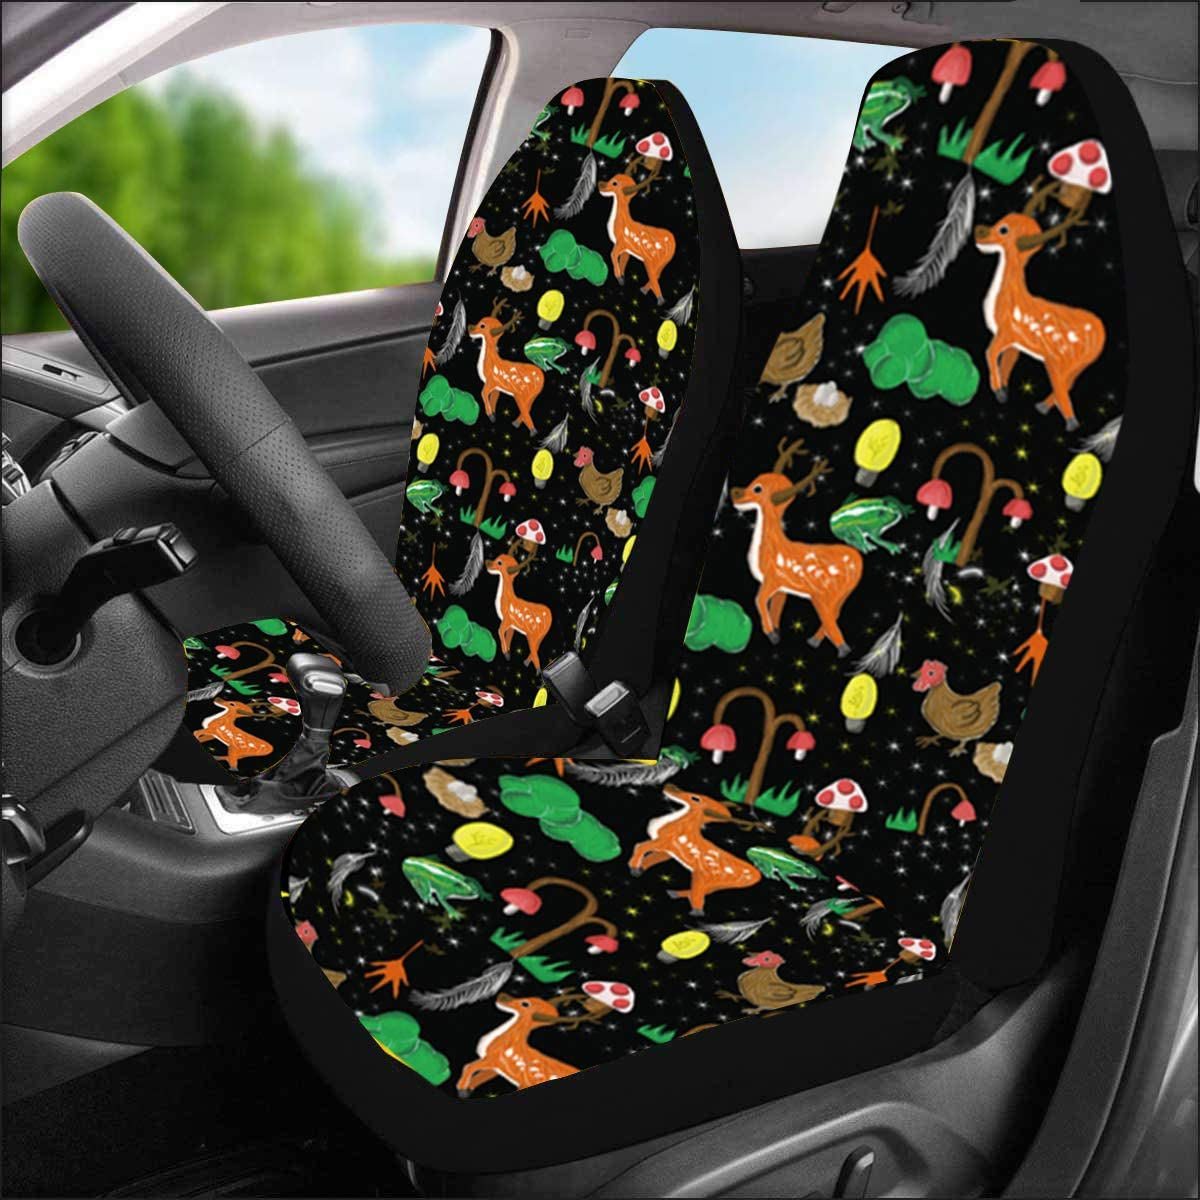 Venhoo Car Seat Covers Lovely Sunflower Universal Auto Front Seats Protector Compatible Fits for Most Car SUV Sedan /& Truck-2 Pcs